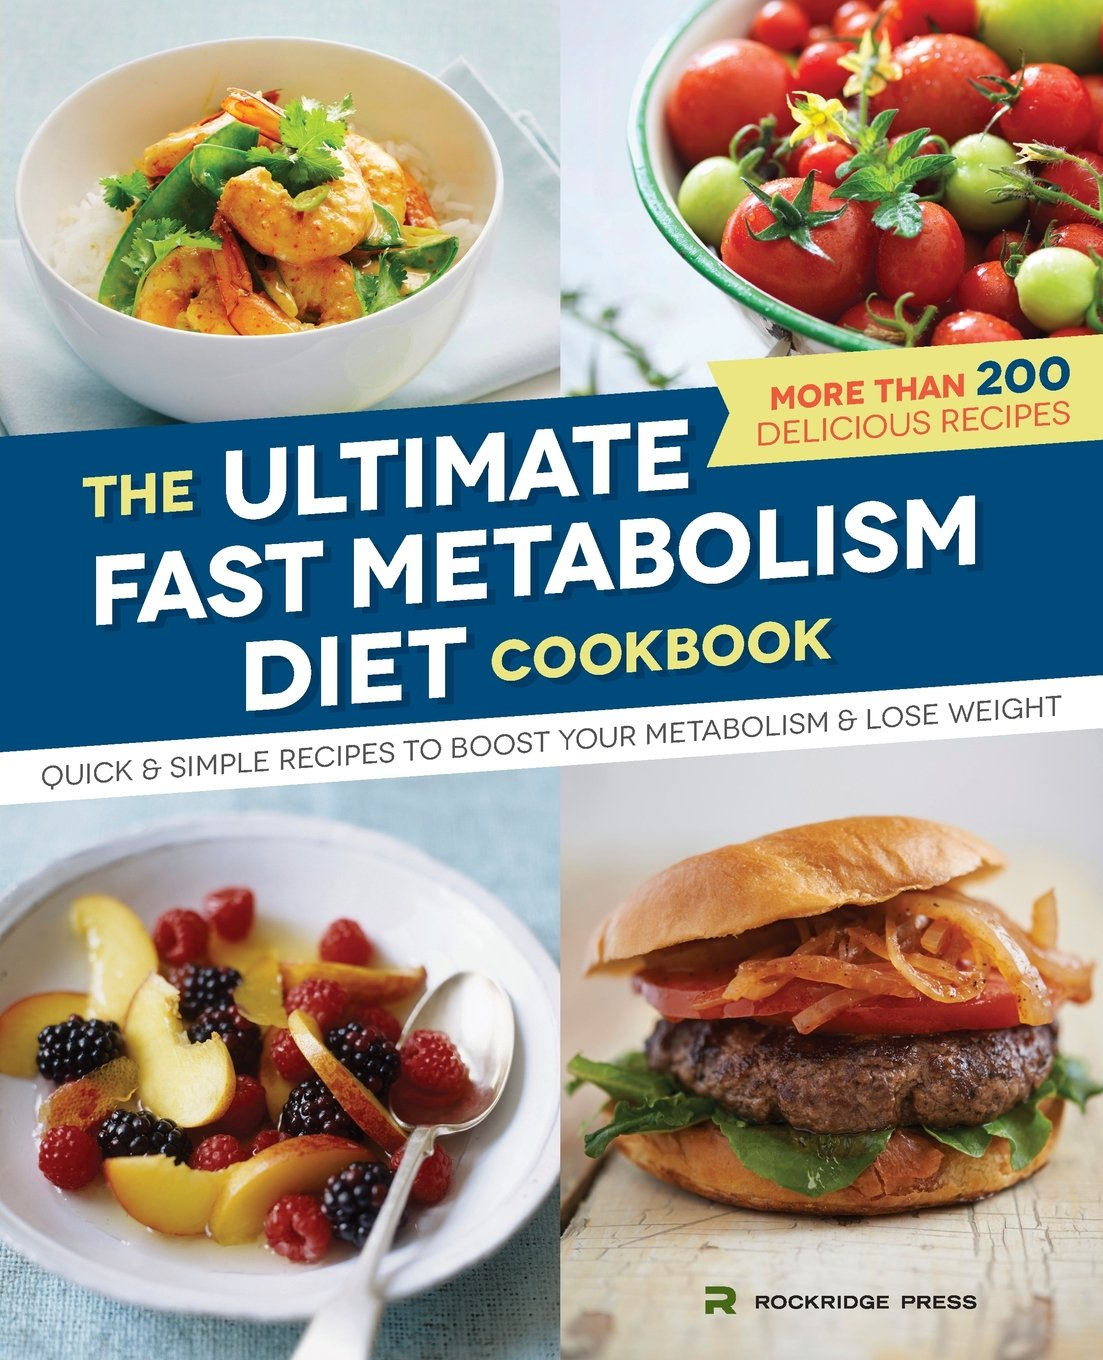 Ultimate Fast Metabolism Diet Cookbook product image